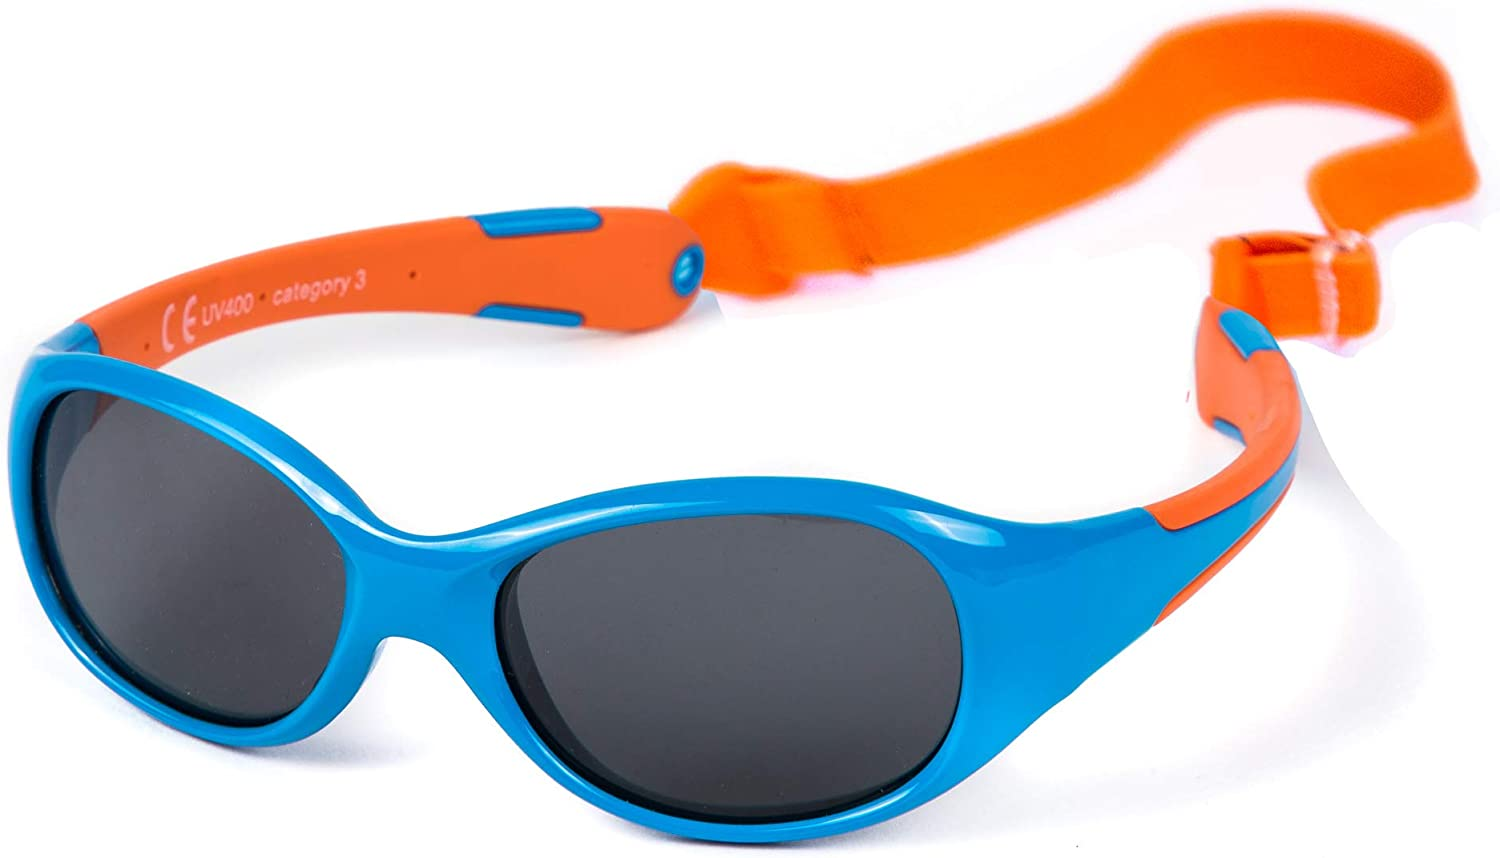 ALLROAD Unbreakable Very flexible Adjustable and Removable Elastic Band KIDDUS Sunglasses Made in One Piece 100/% UV400 protection For Babies from 0 Months BPA free